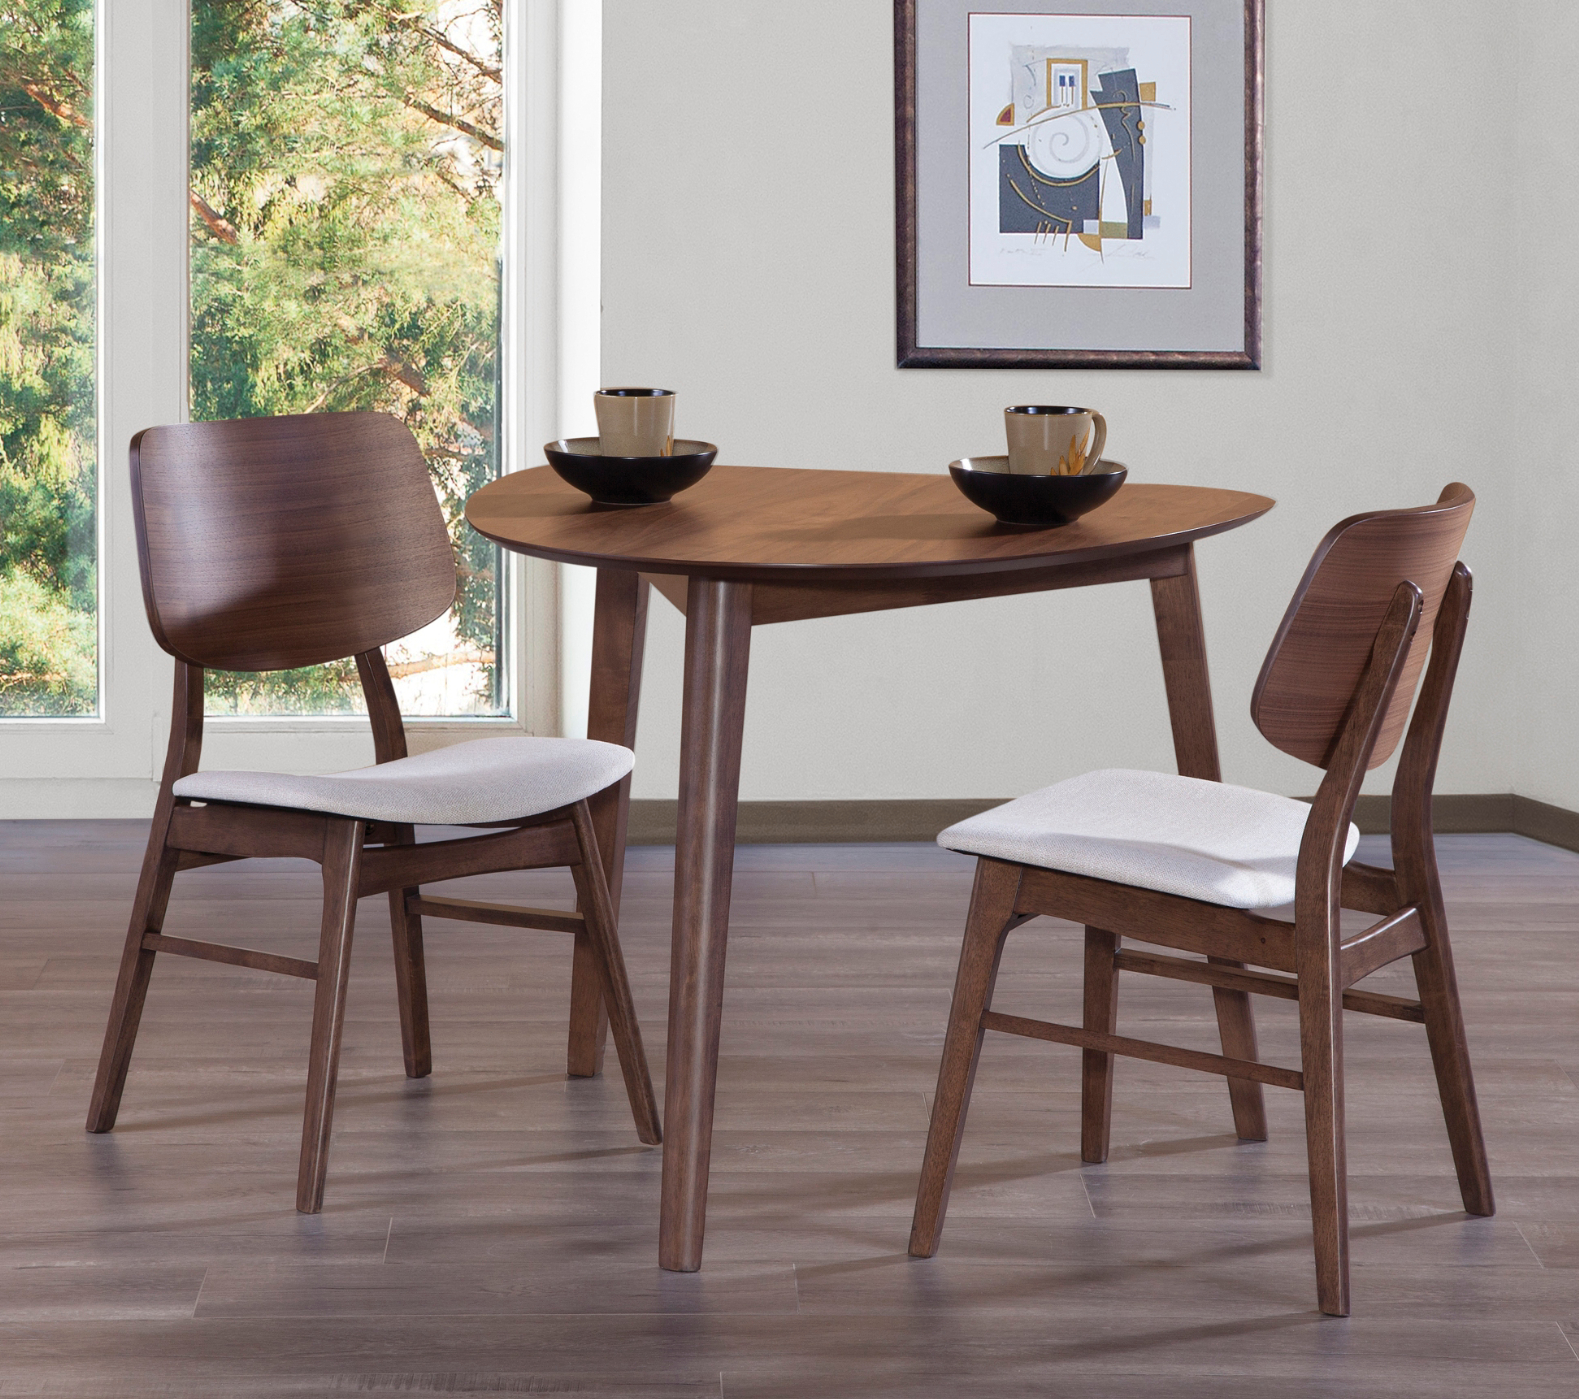 We Love A Corner Dining Set Like This One In Small Spaces So